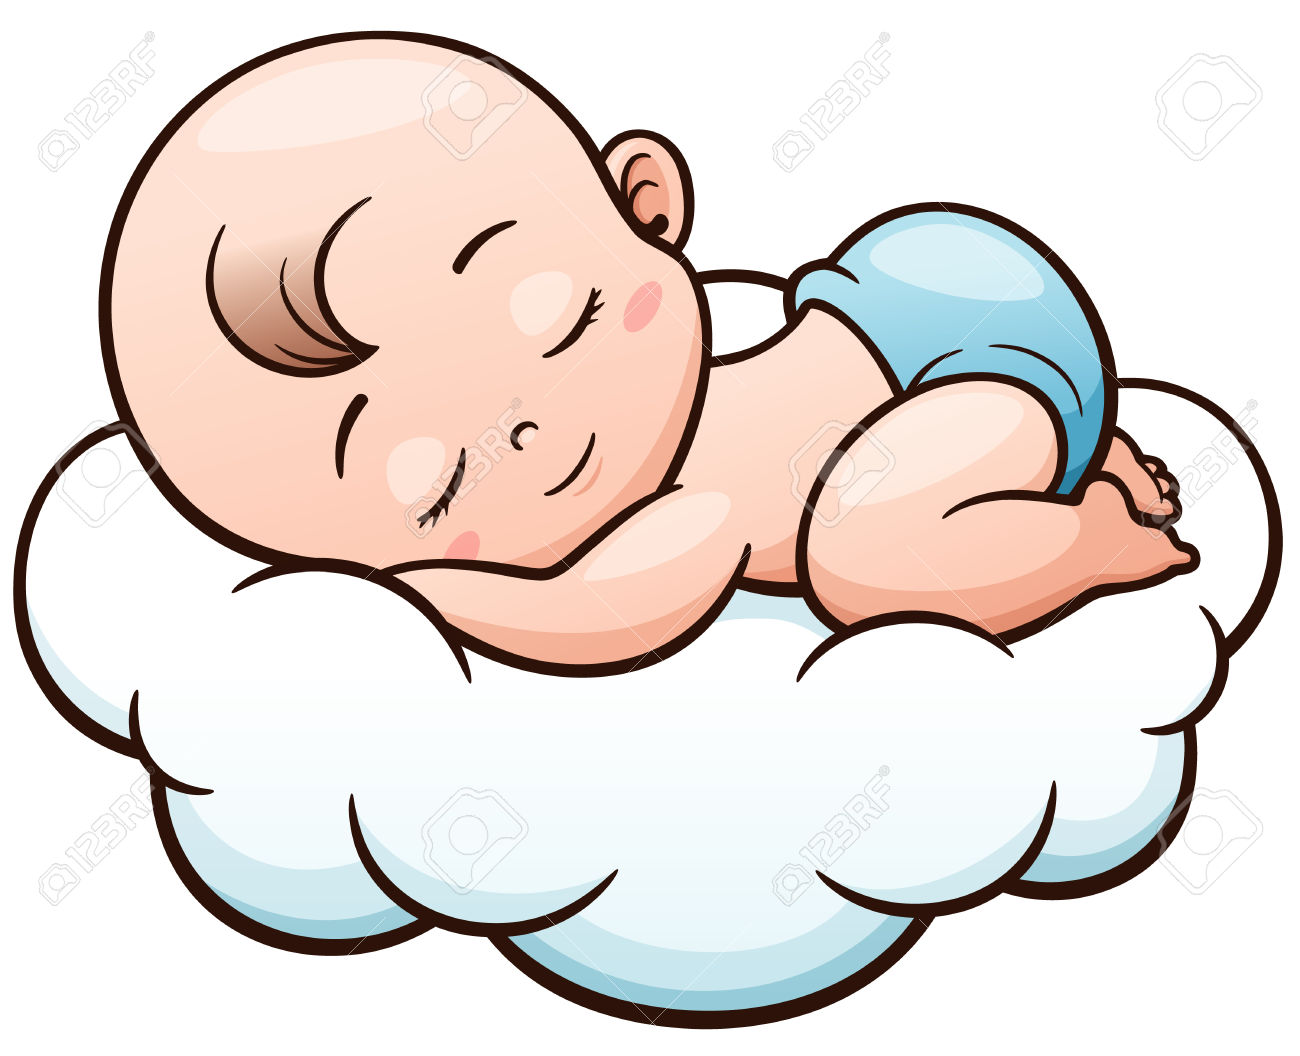 1300x1056 Stomack Sleeping Clipart, Explore Pictures